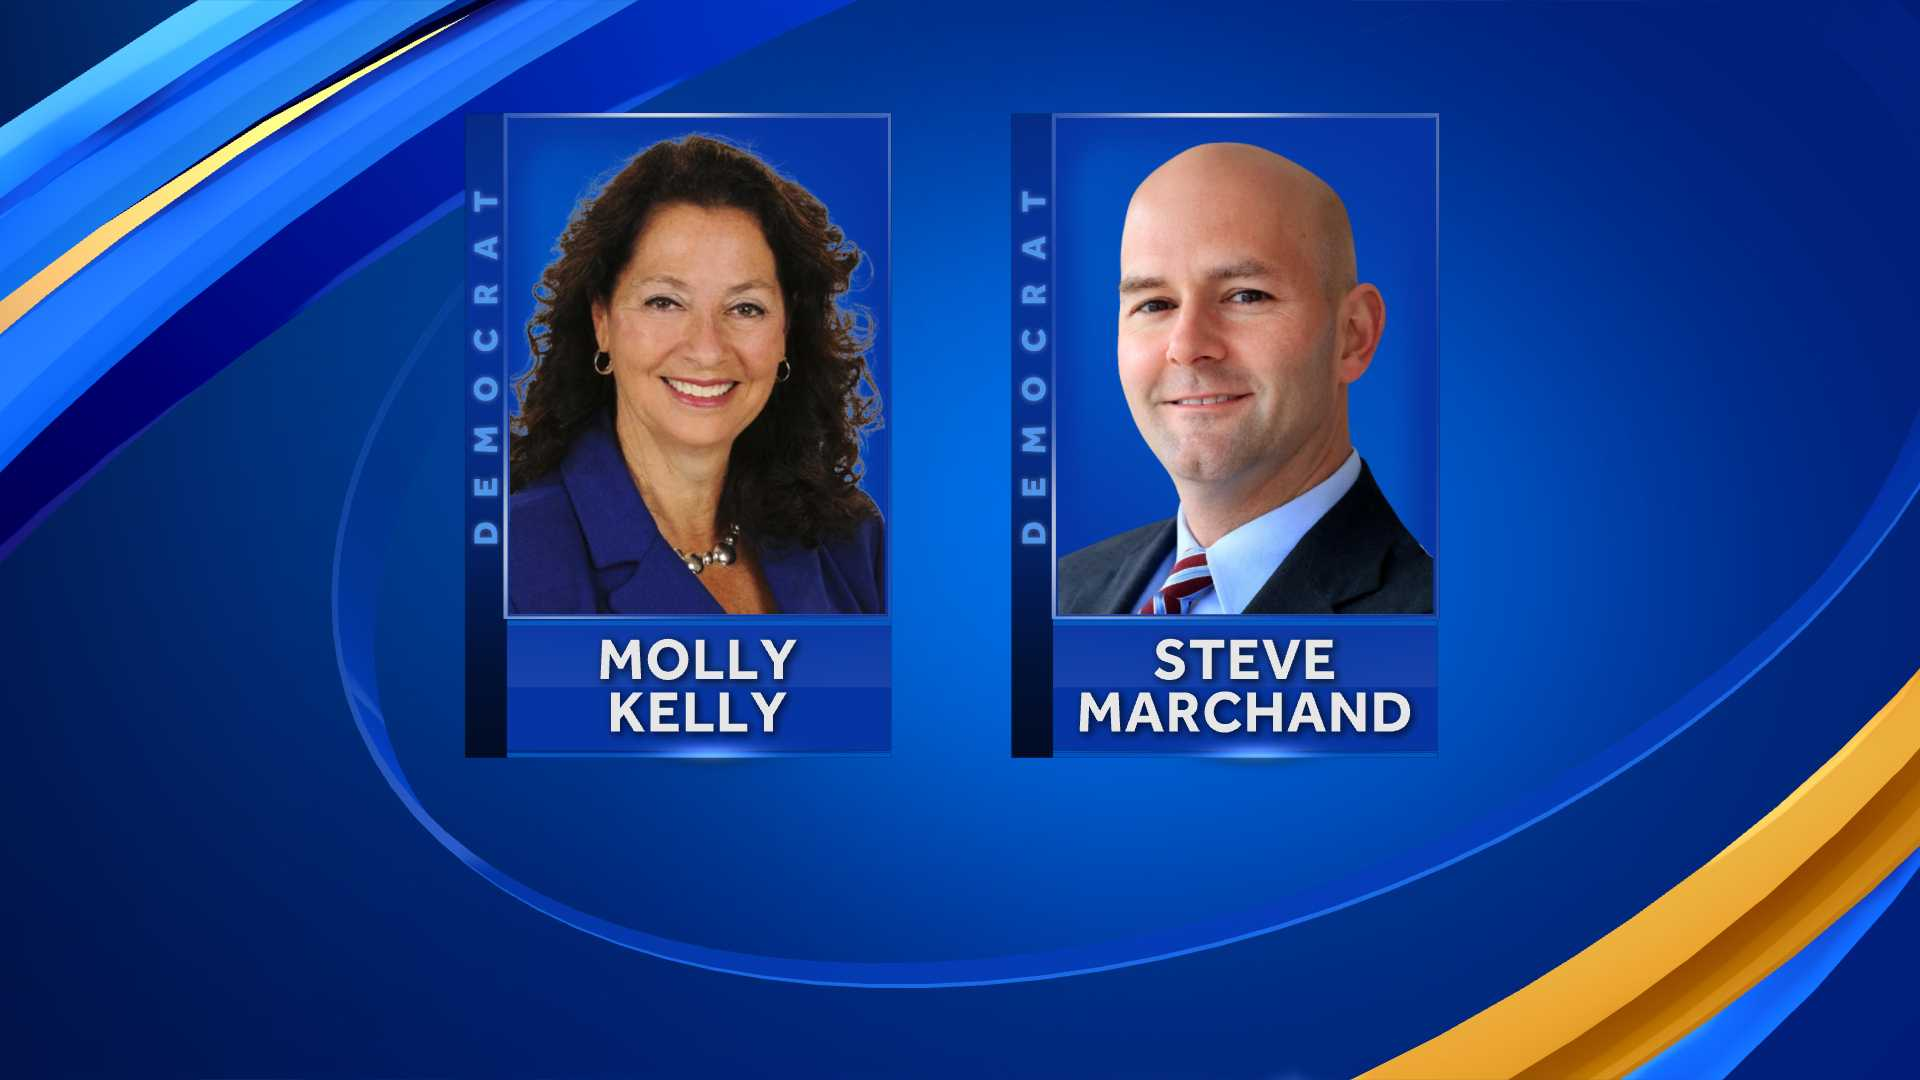 Democratic gubernatorial candidates Molly Kelly and Steve Marchand